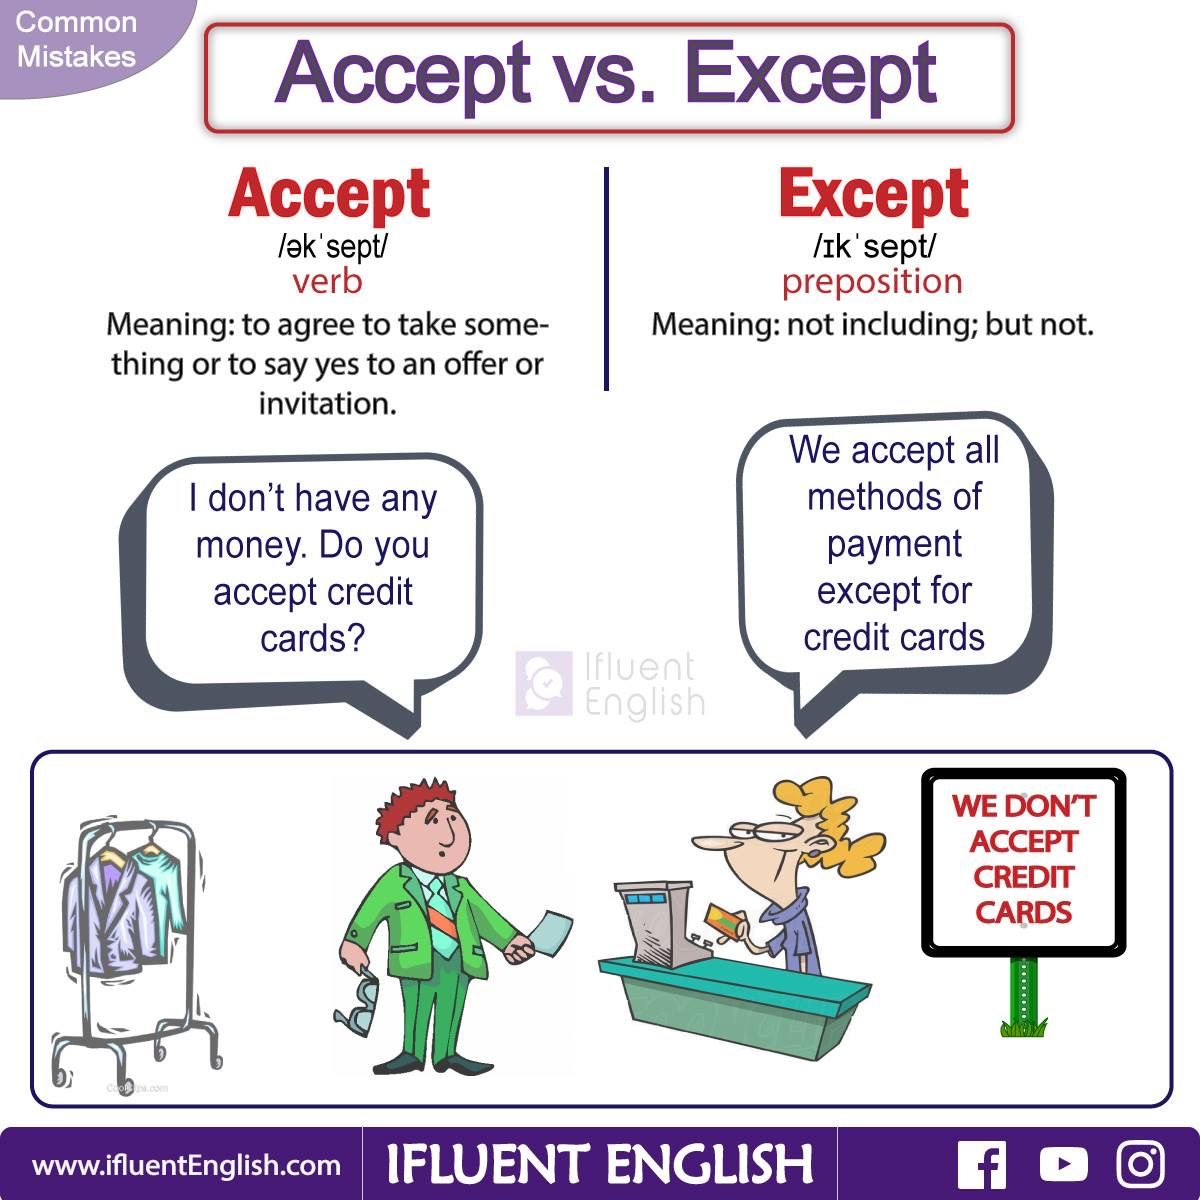 Common mistakes accept vs except english pinterest english common mistakes accept vs except stopboris Gallery